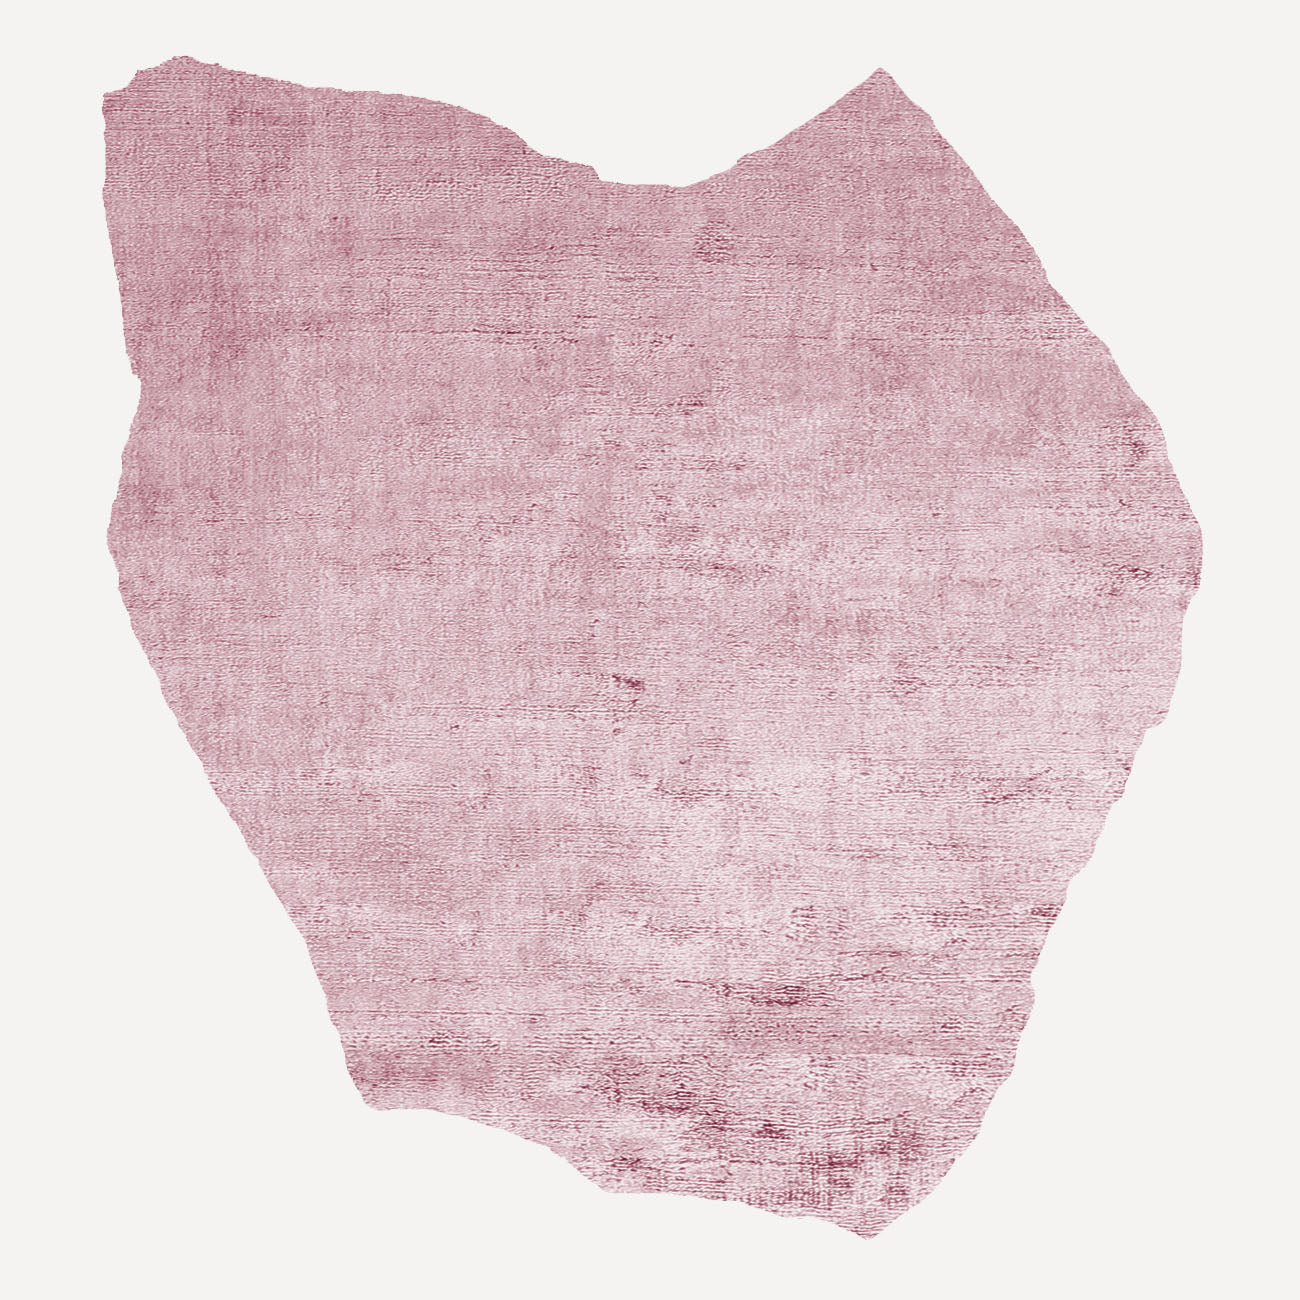 CALLE HENZEL, TIRED LITTLE ONE CASHMERE SMOKE (HANDLOOM), 2015 (QS)